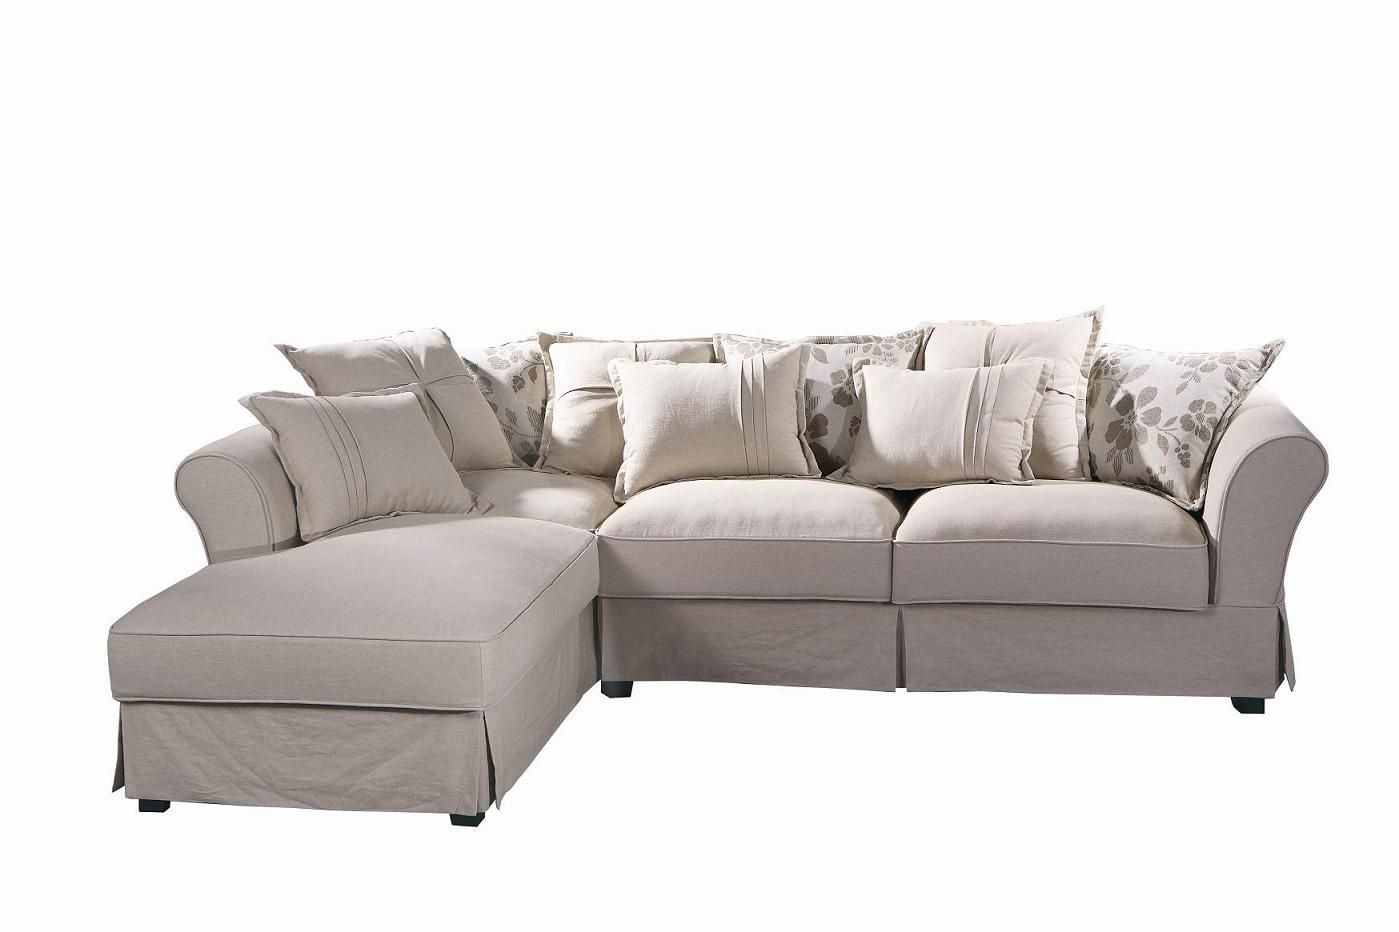 Image About cheap couches and sofas for sale. Cheap Couches And Sofas For Sale   Sofa Pabburi